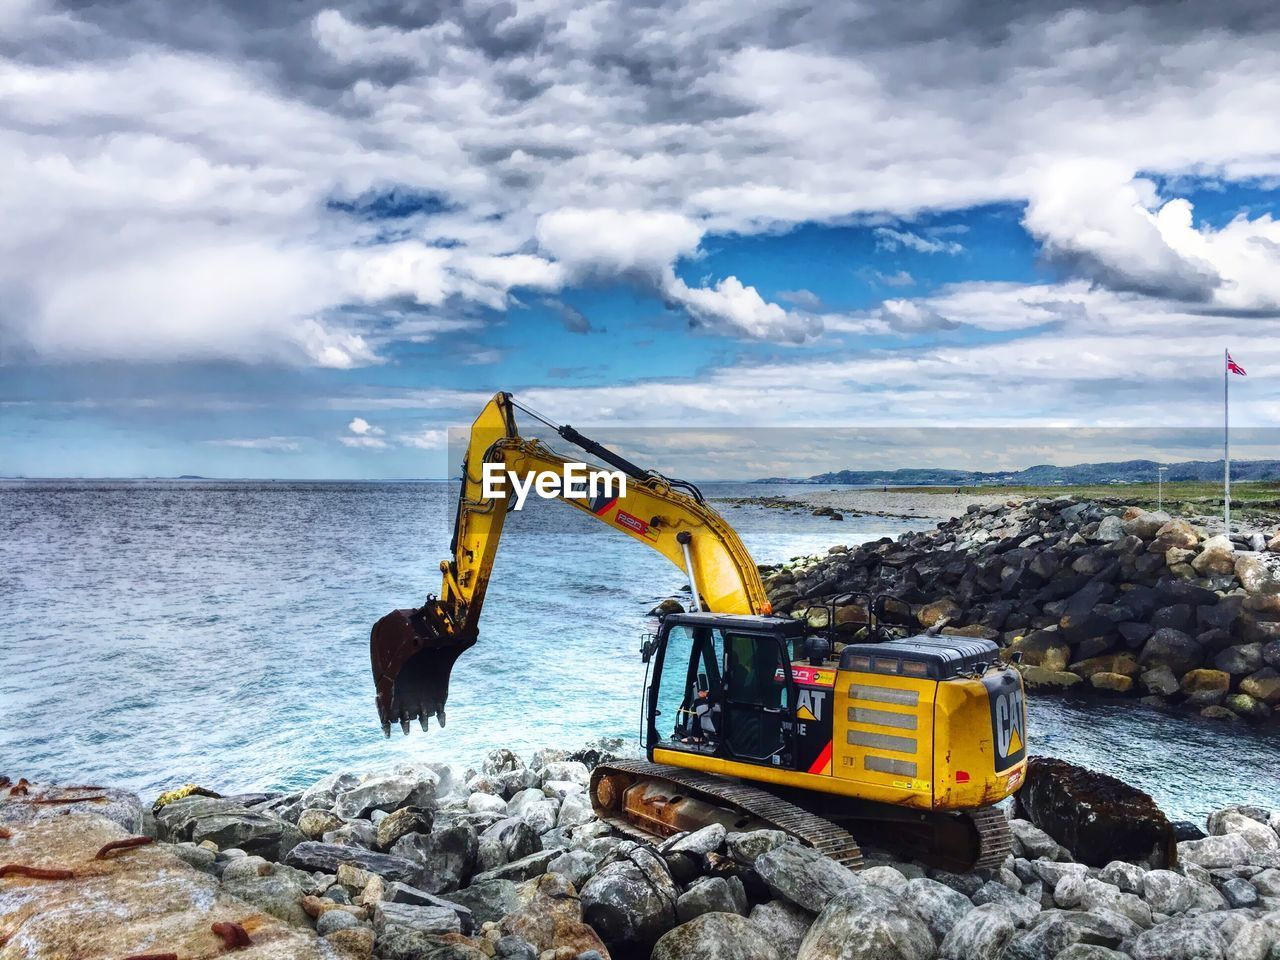 Earth Mover On Rocks By Sea Against Cloudy Sky